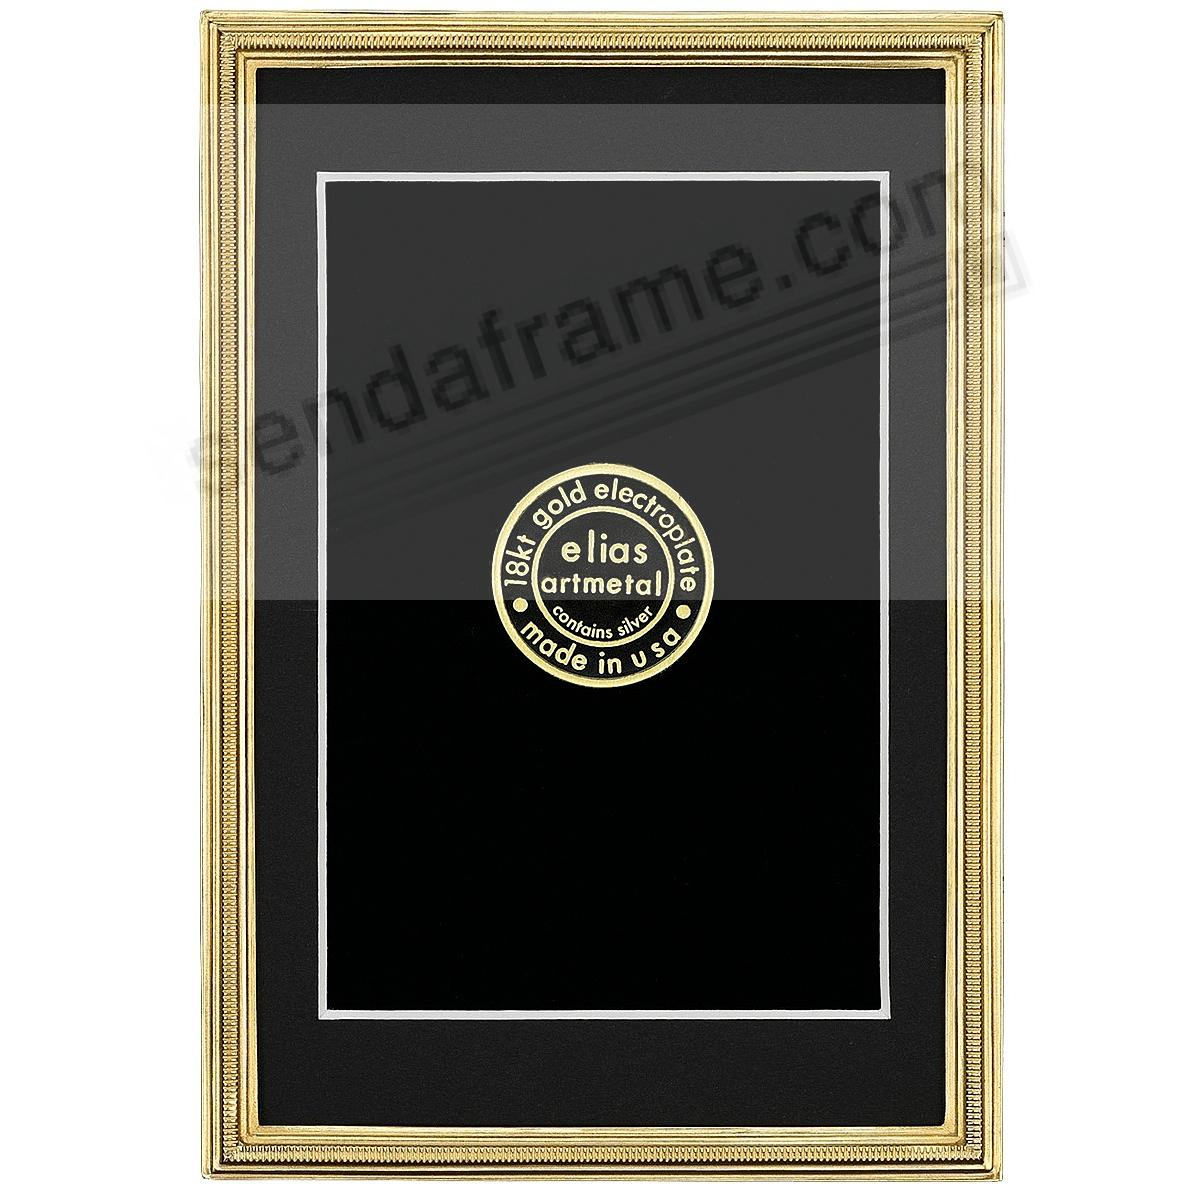 ZIPPER Fine 18kt Museum Gold over Pewter frame 4x6/3½x5½ by Elias Artmetal®